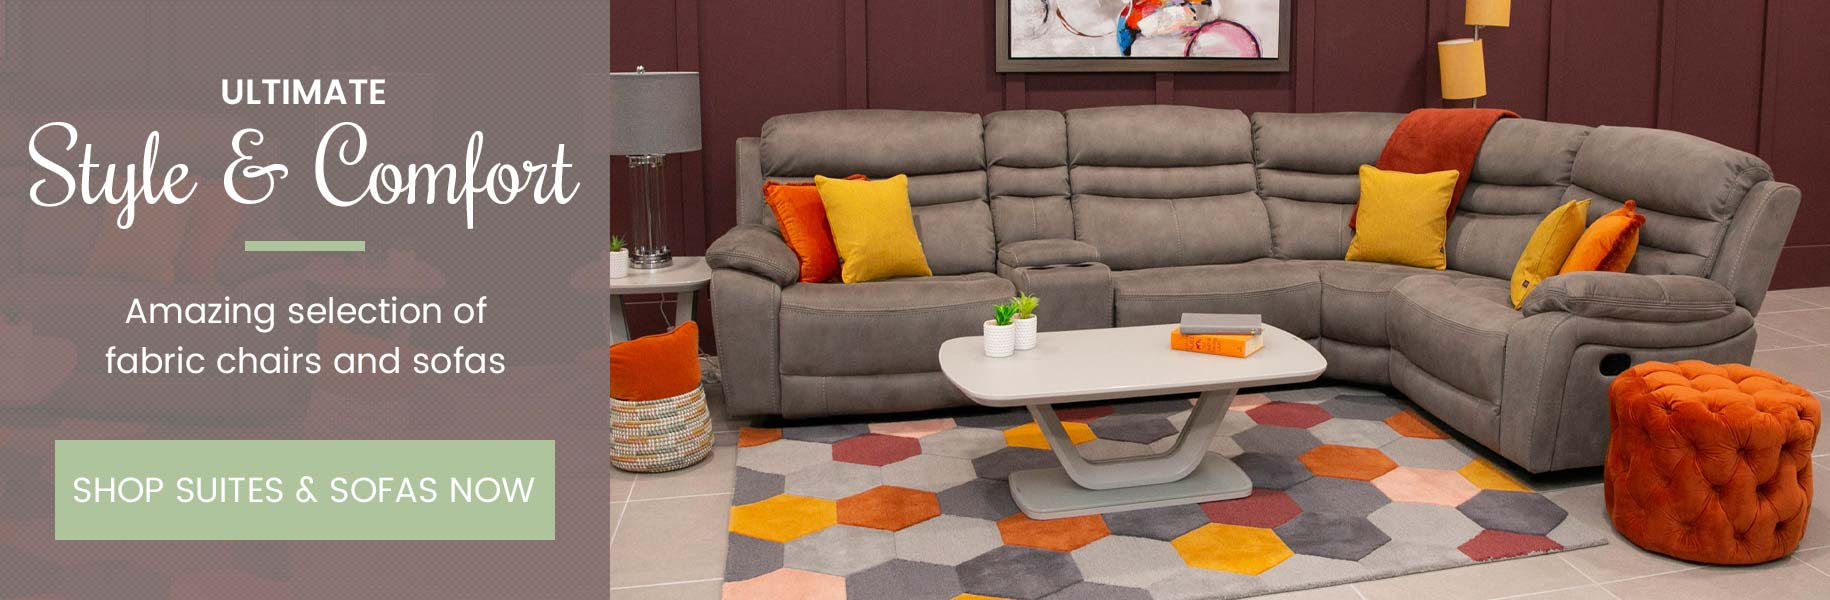 Ultimate style and comfort. Amazing selection of leather chairs and sofas. Shop Suites & Sofas now.